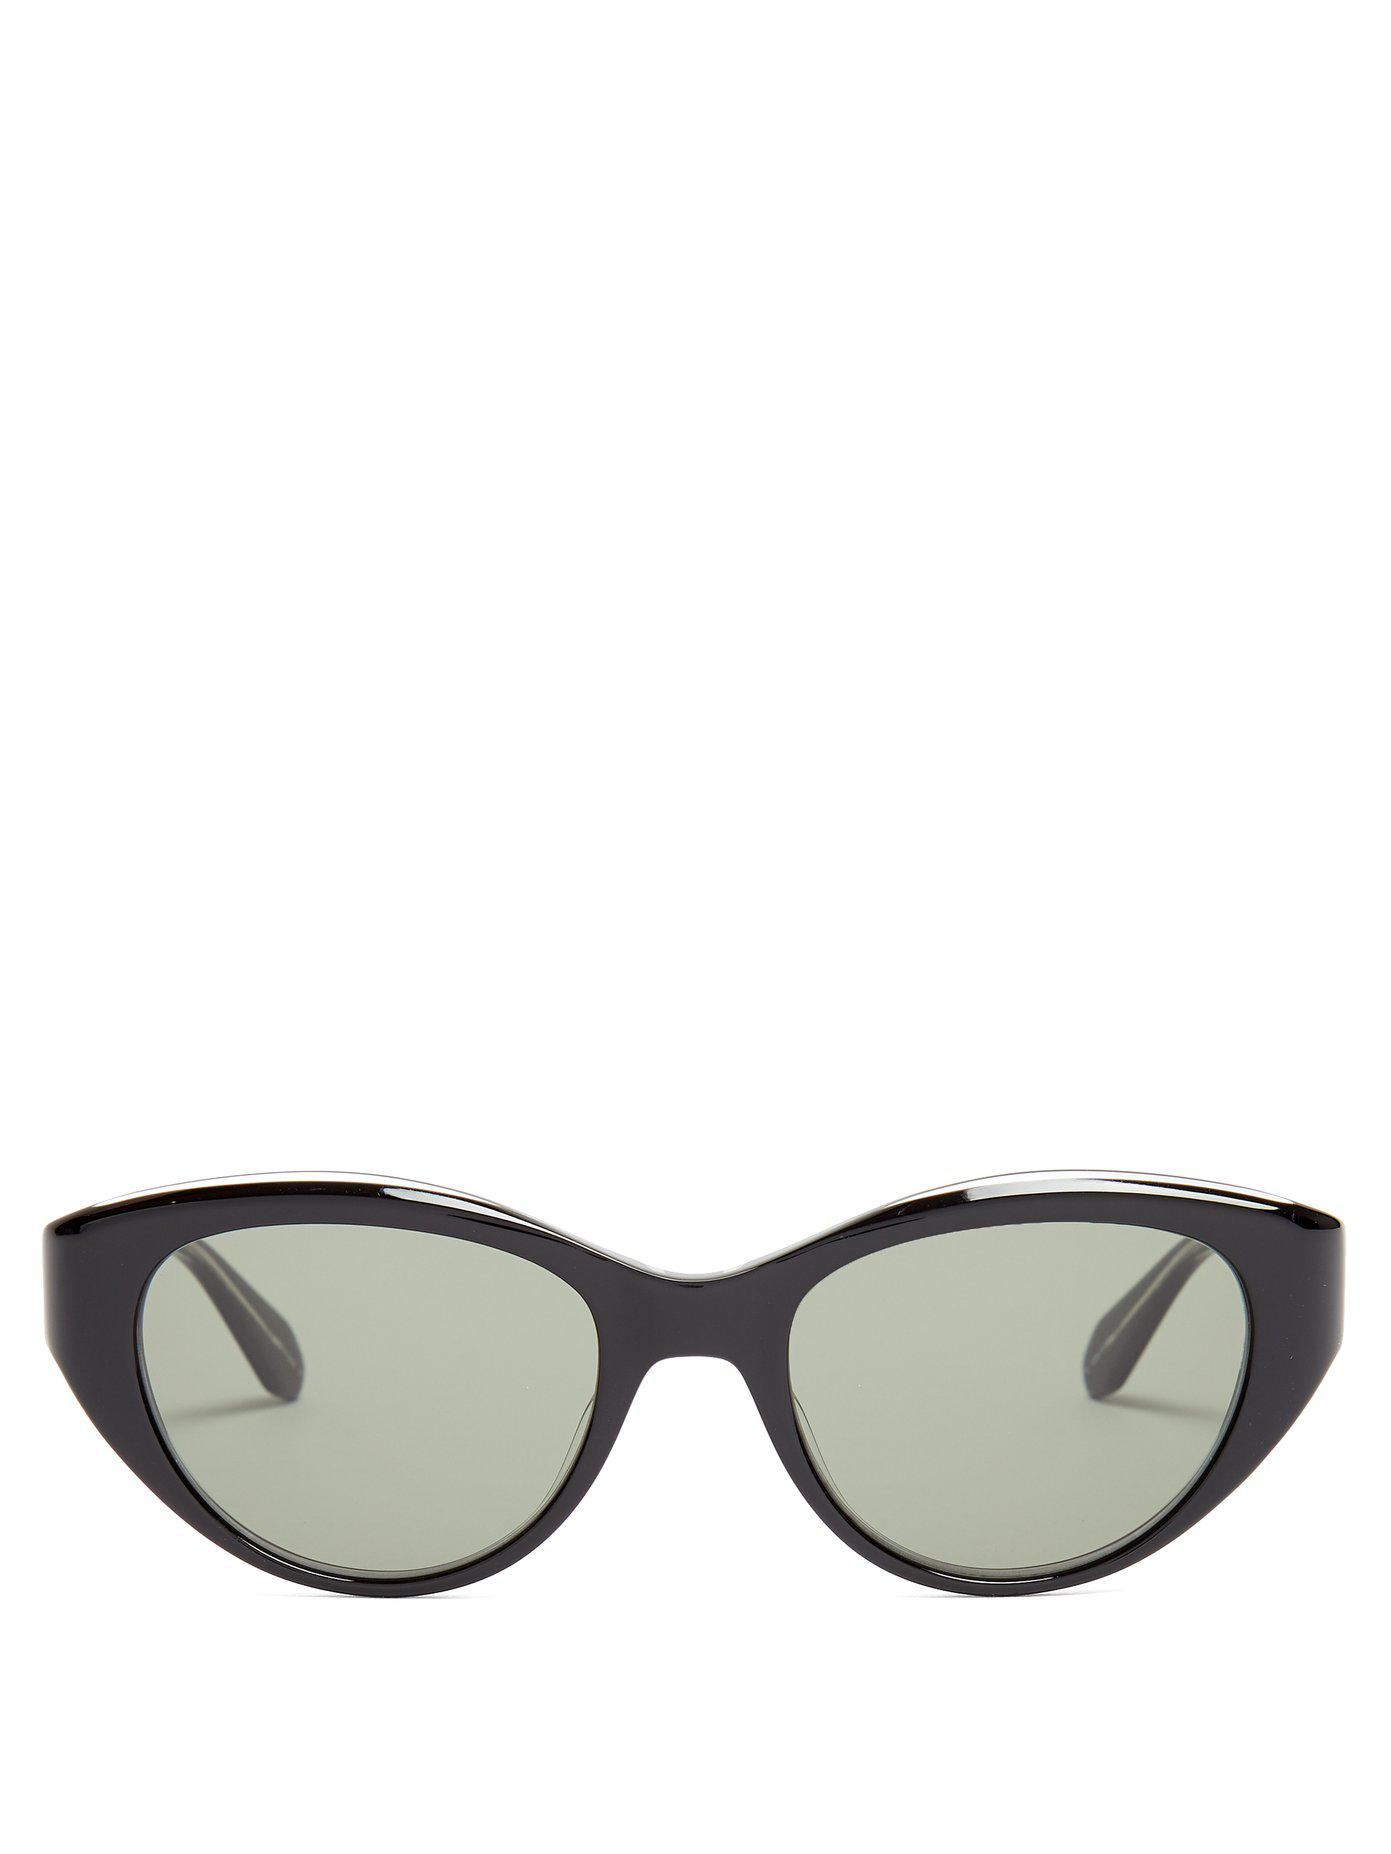 Del Rey round-frame cat-eye sunglasses Garrett Leight szzp6cSj